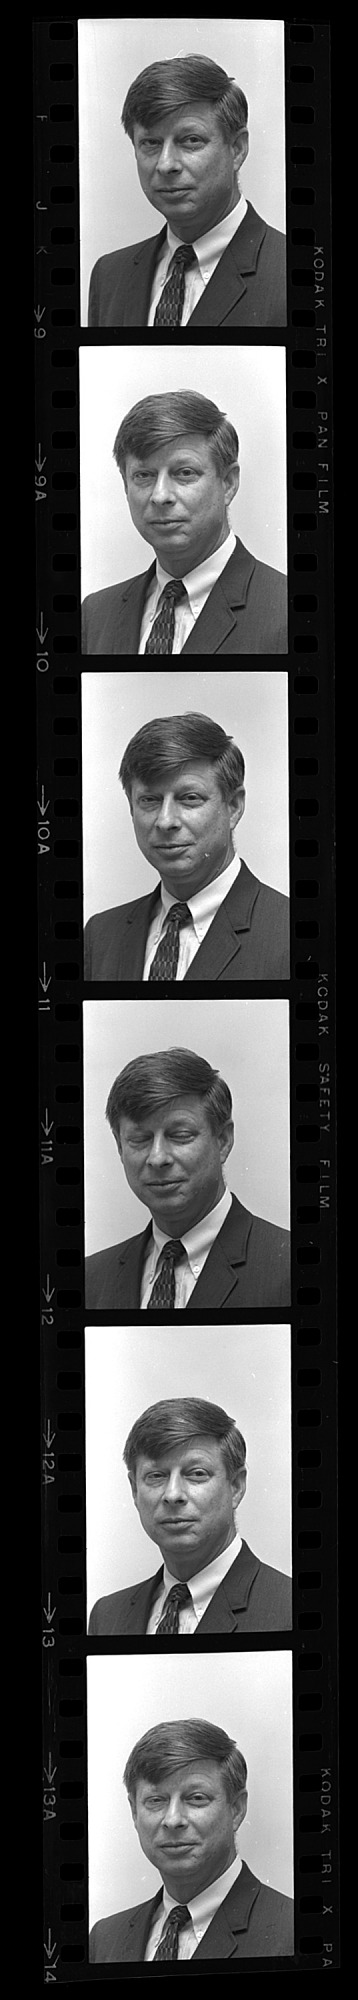 Portrait of Unidentified Male, 1965, Smithsonian Institution Archives, SIA Acc. 11-008 [OPA-22].